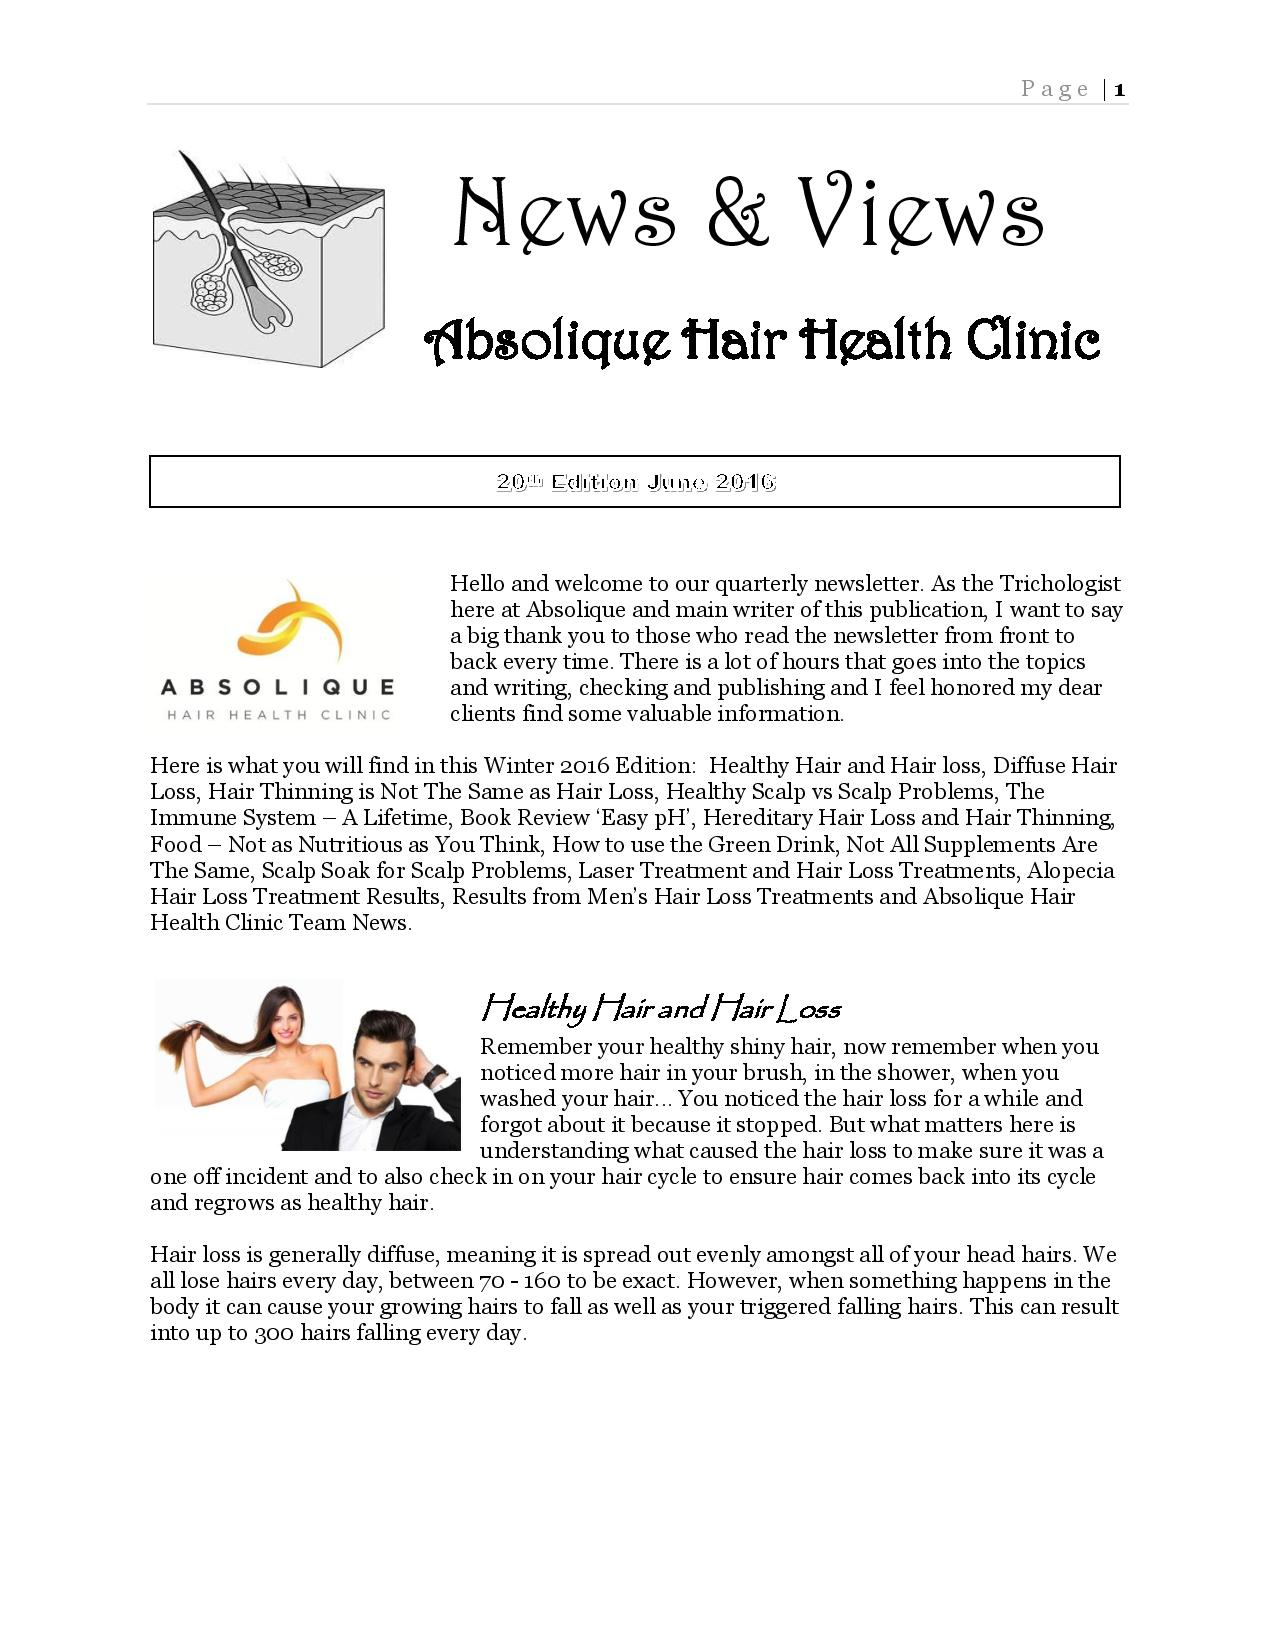 News and Views June 2016